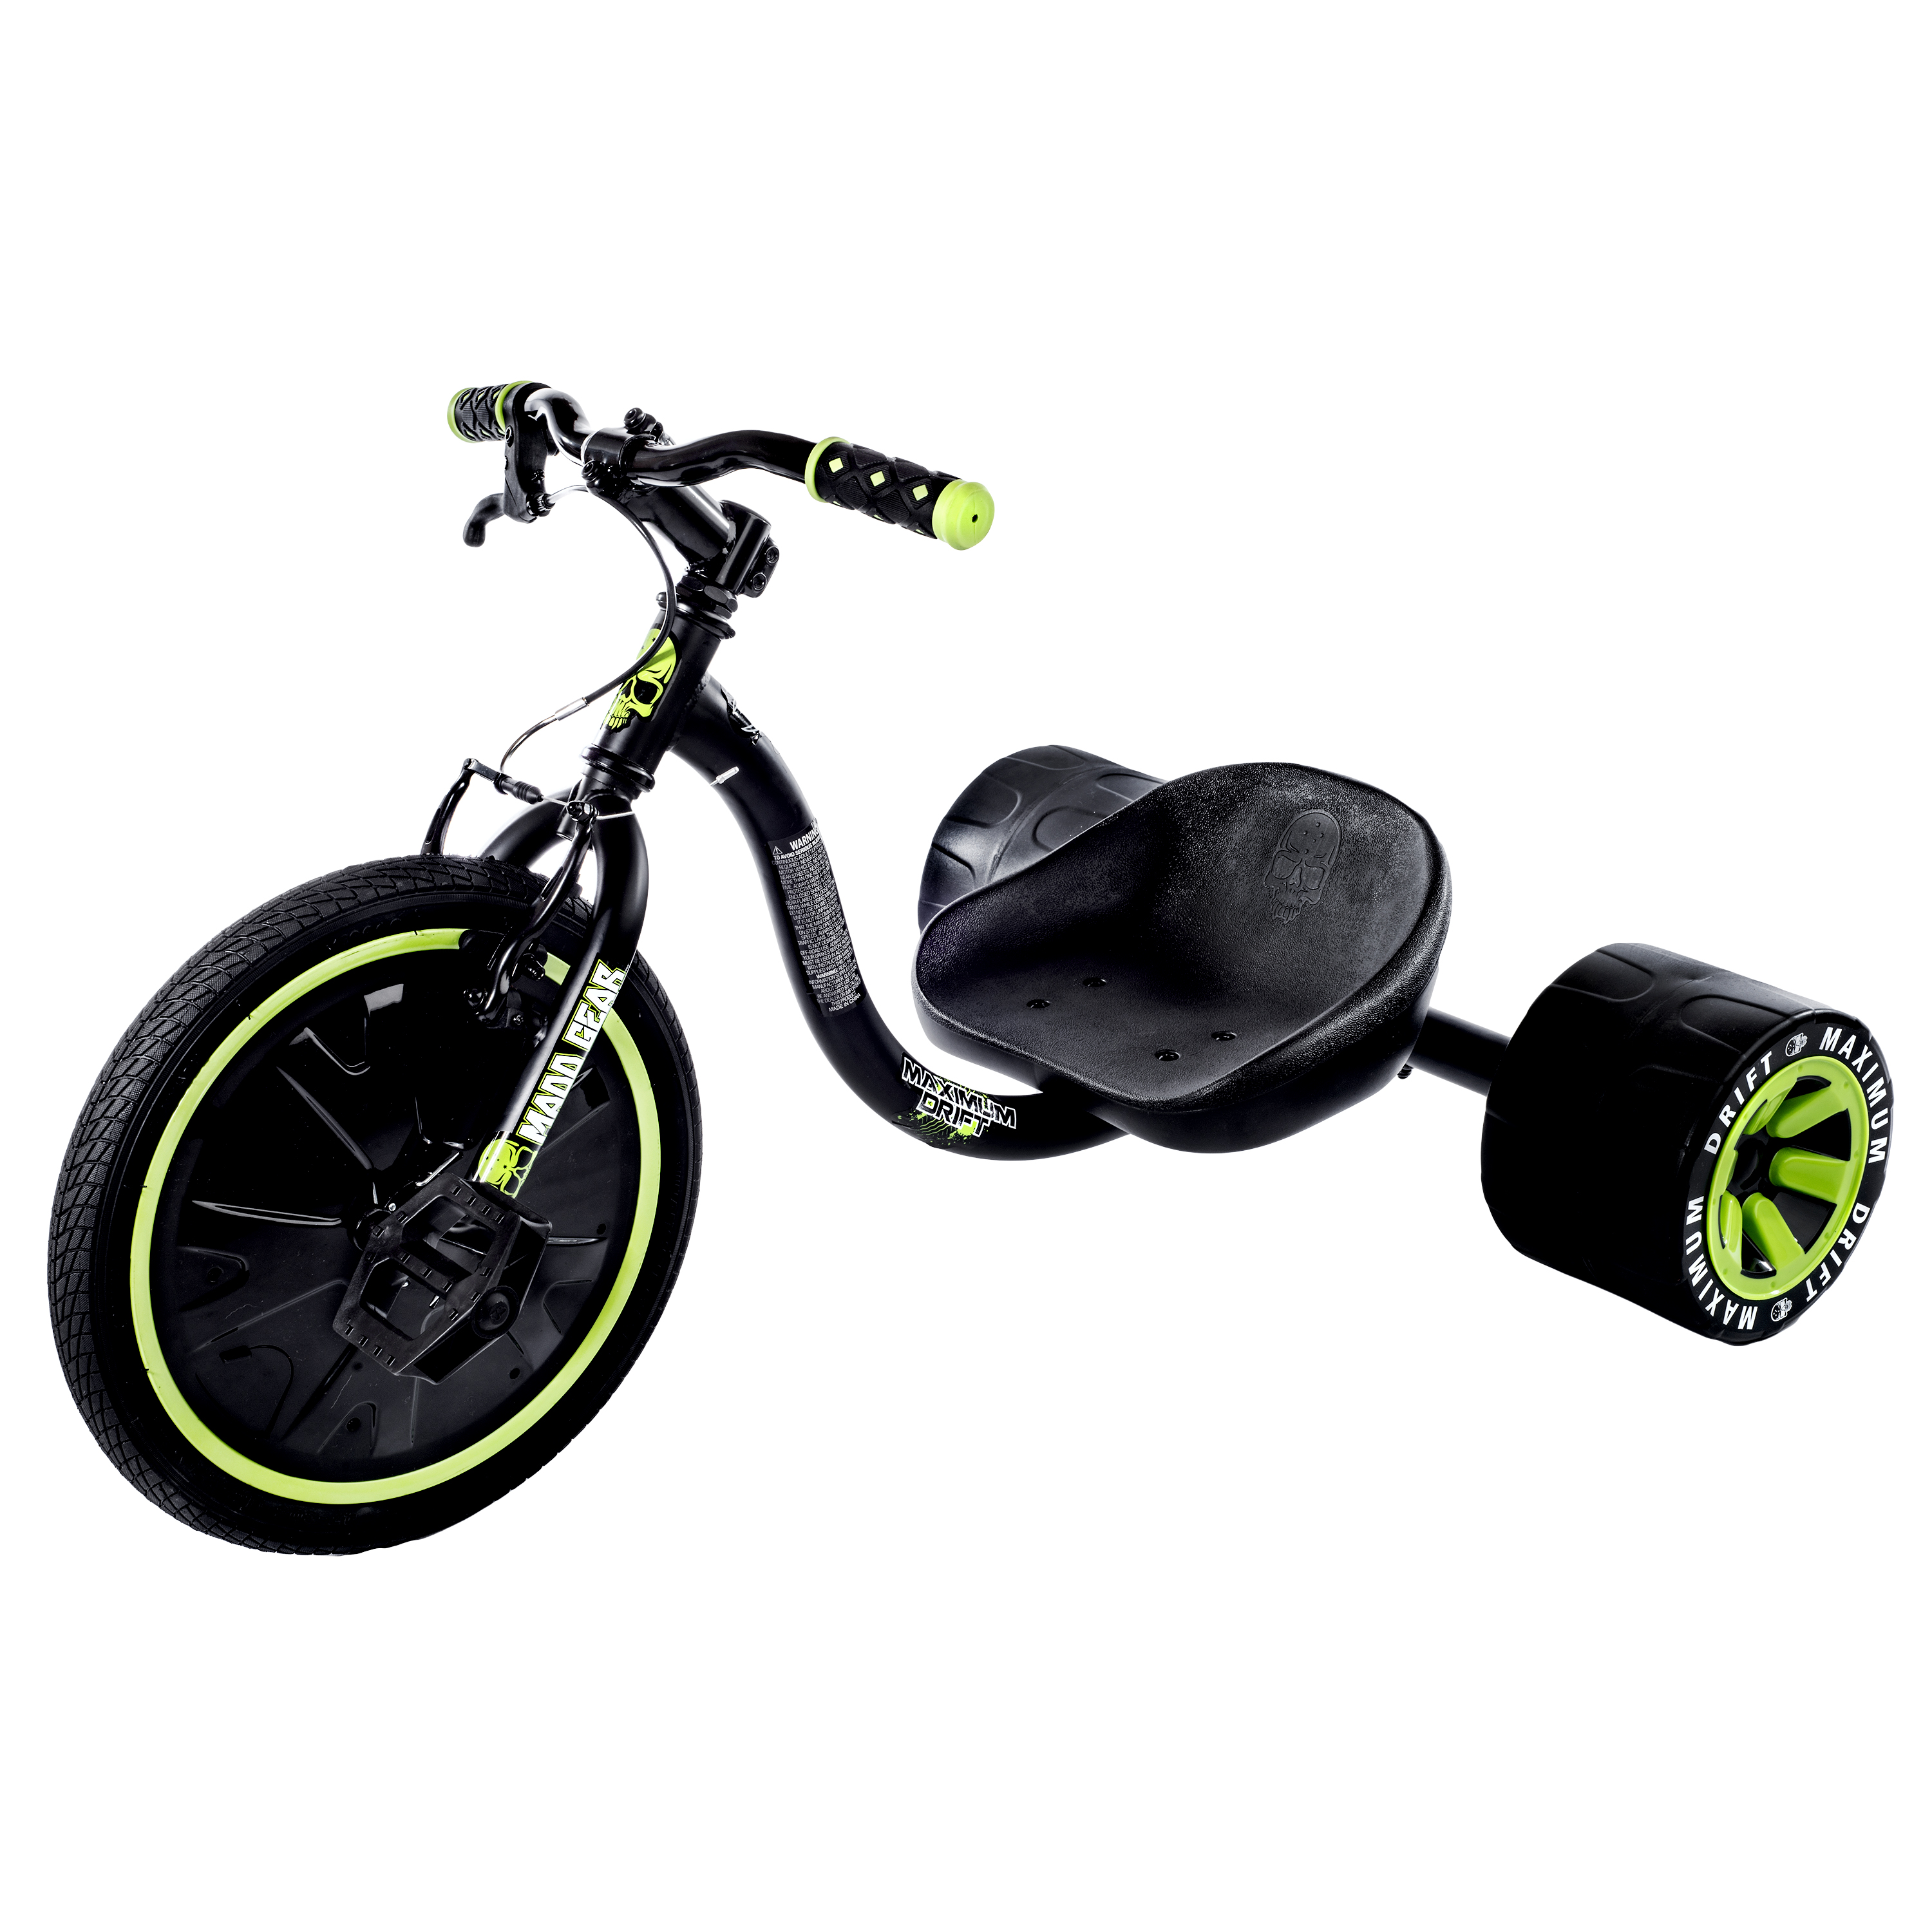 Madd Gear Mini Drift Trike Bike